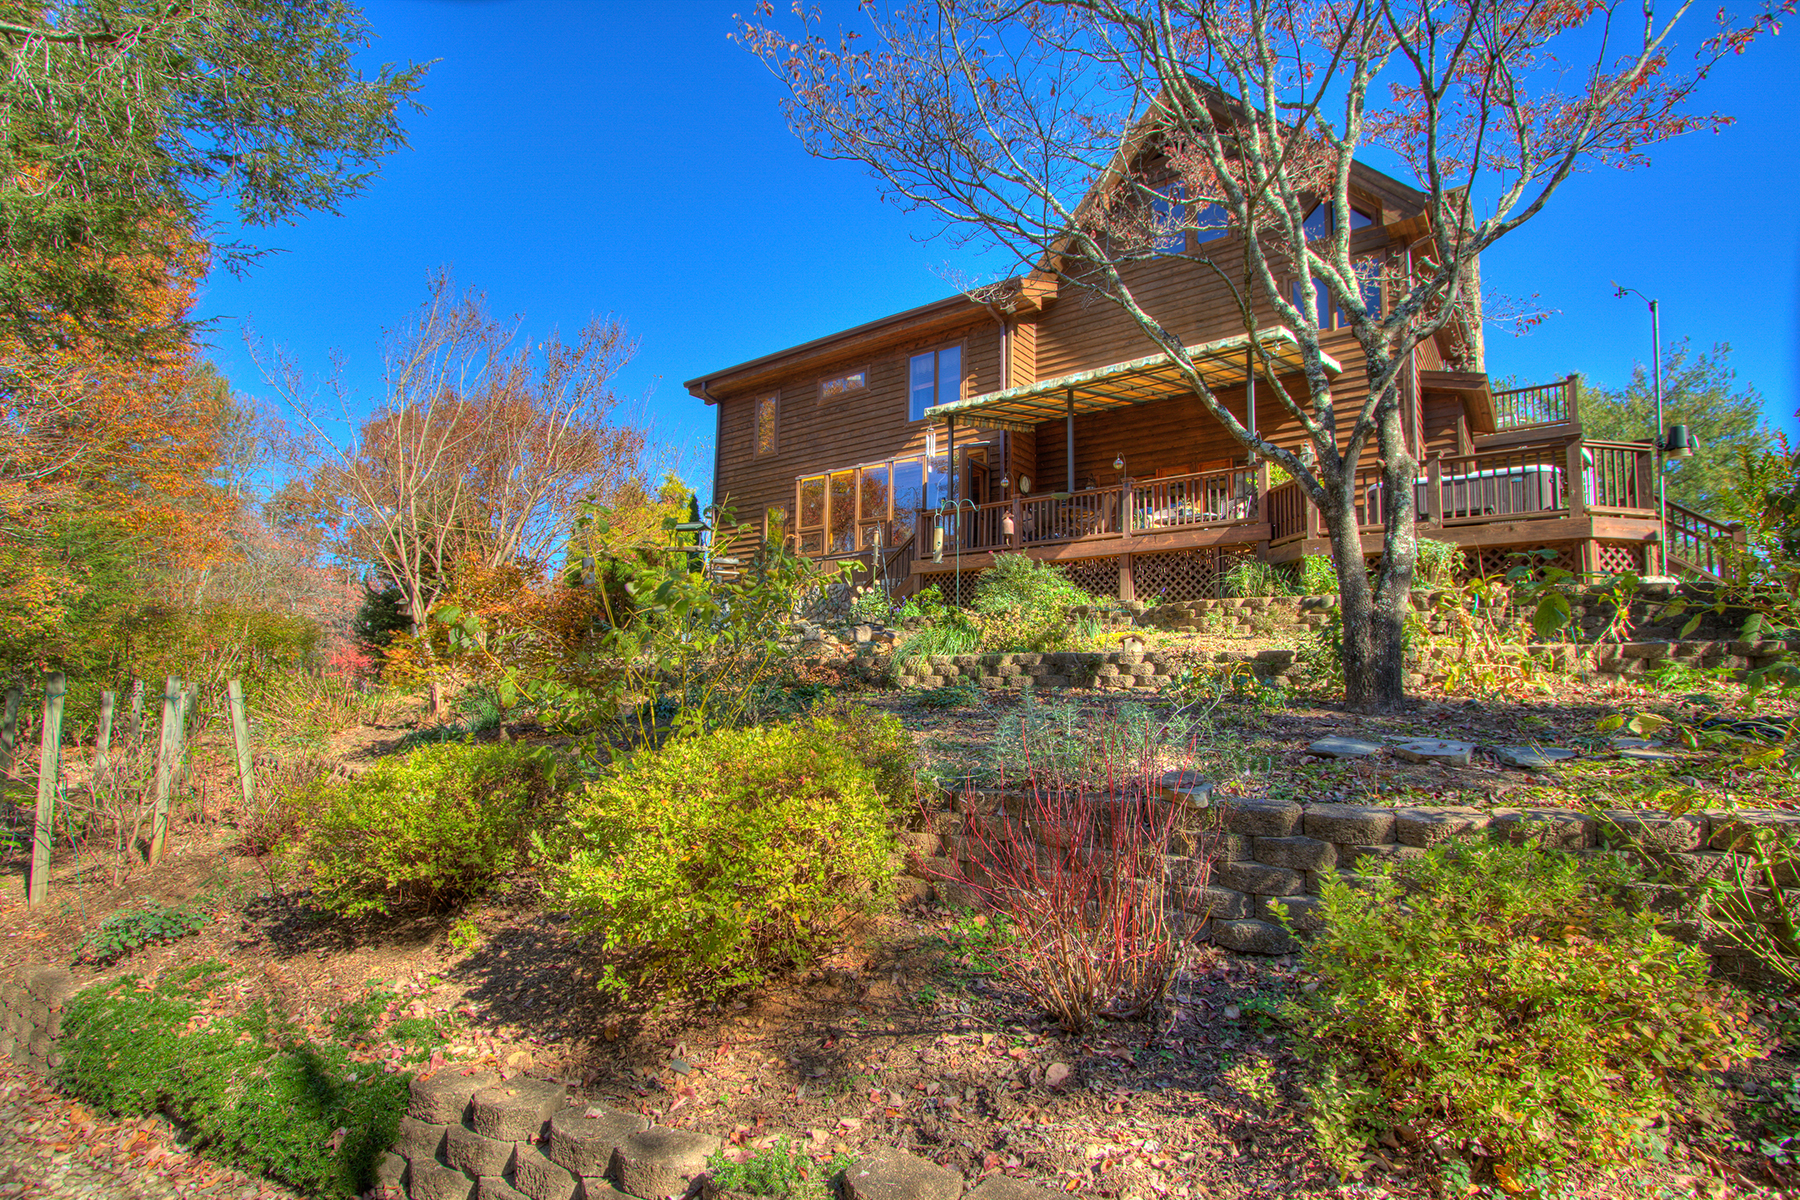 Single Family Home for Sale at 48 ACRE MOUNTAIN ESTATE 5011 Buffalo Cove Rd, Lenoir, North Carolina 28645 United StatesIn/Around: Blowing Rock